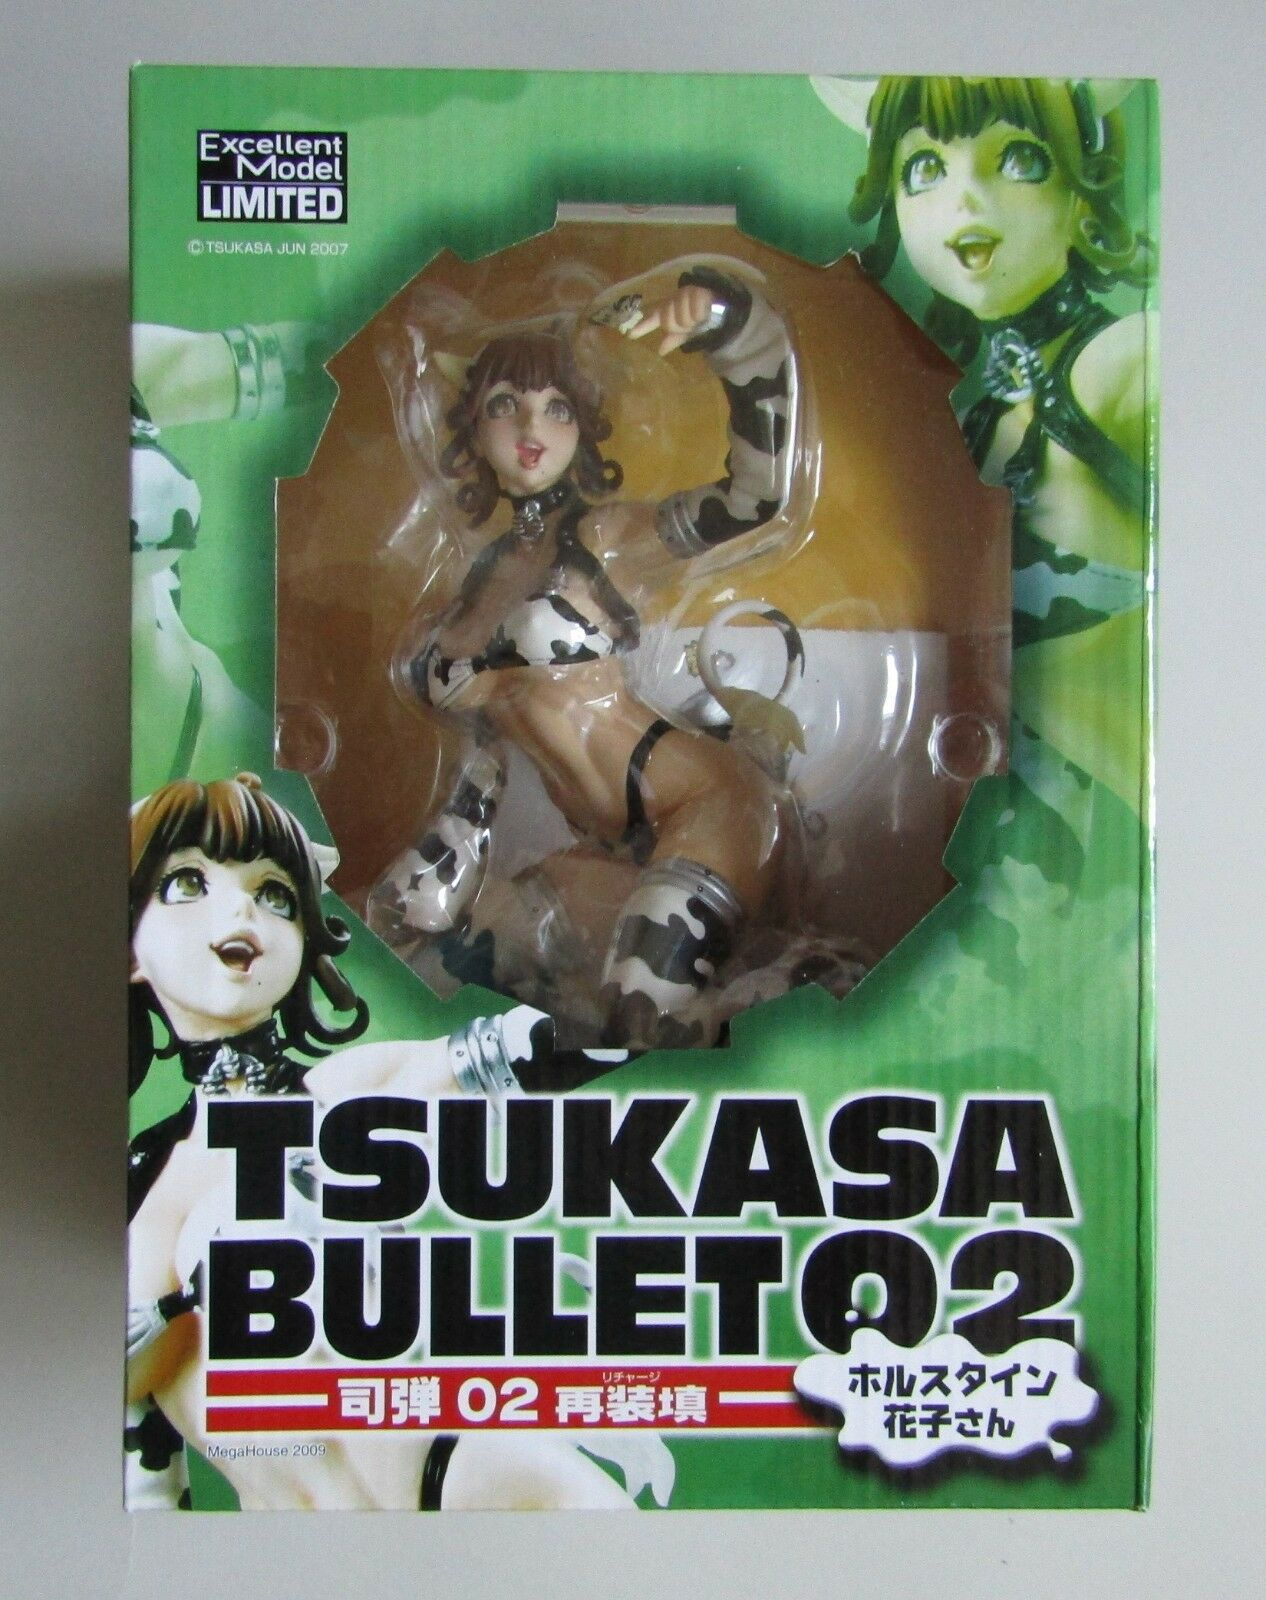 Figure Tsukasa Bullet 02  Excellent Model Limited, NEUF, Scellé  liquidation de la boutique